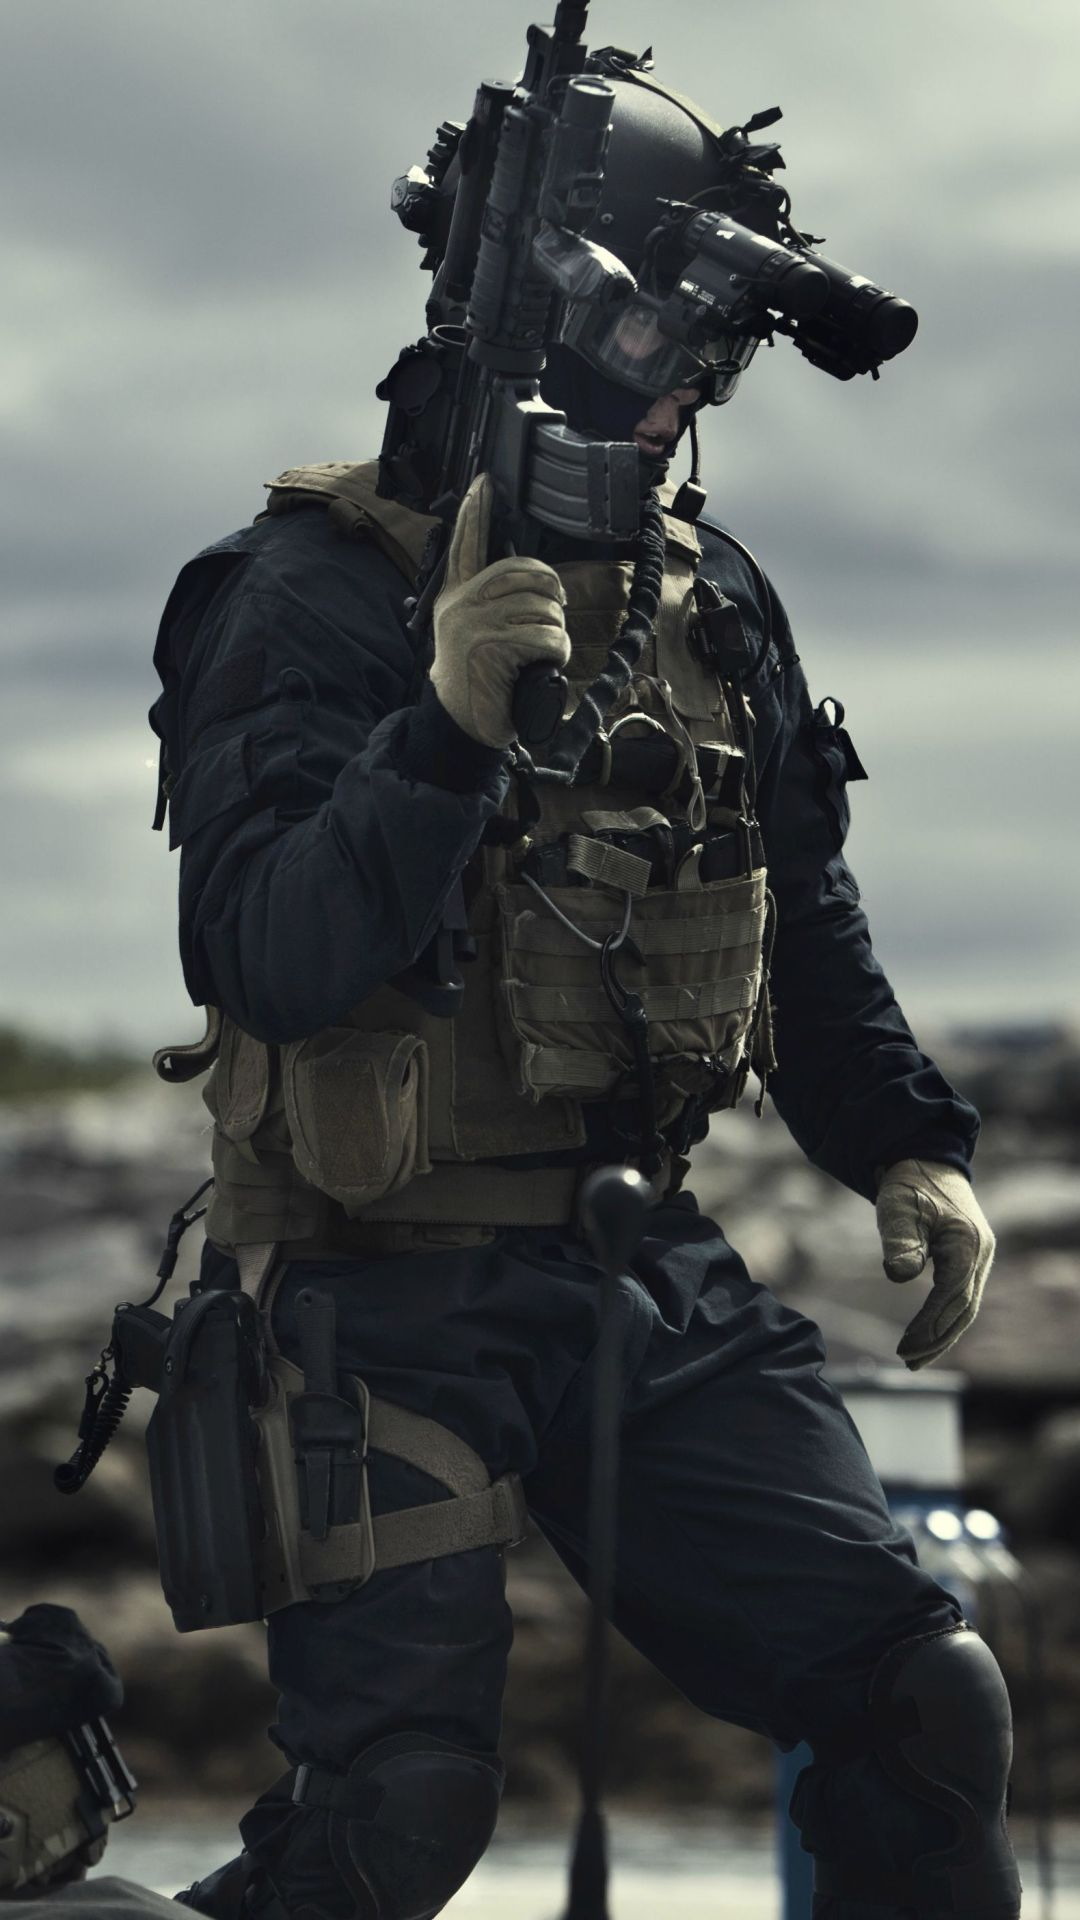 Military / Soldier (1080x1920) Mobile Wallpaper (With